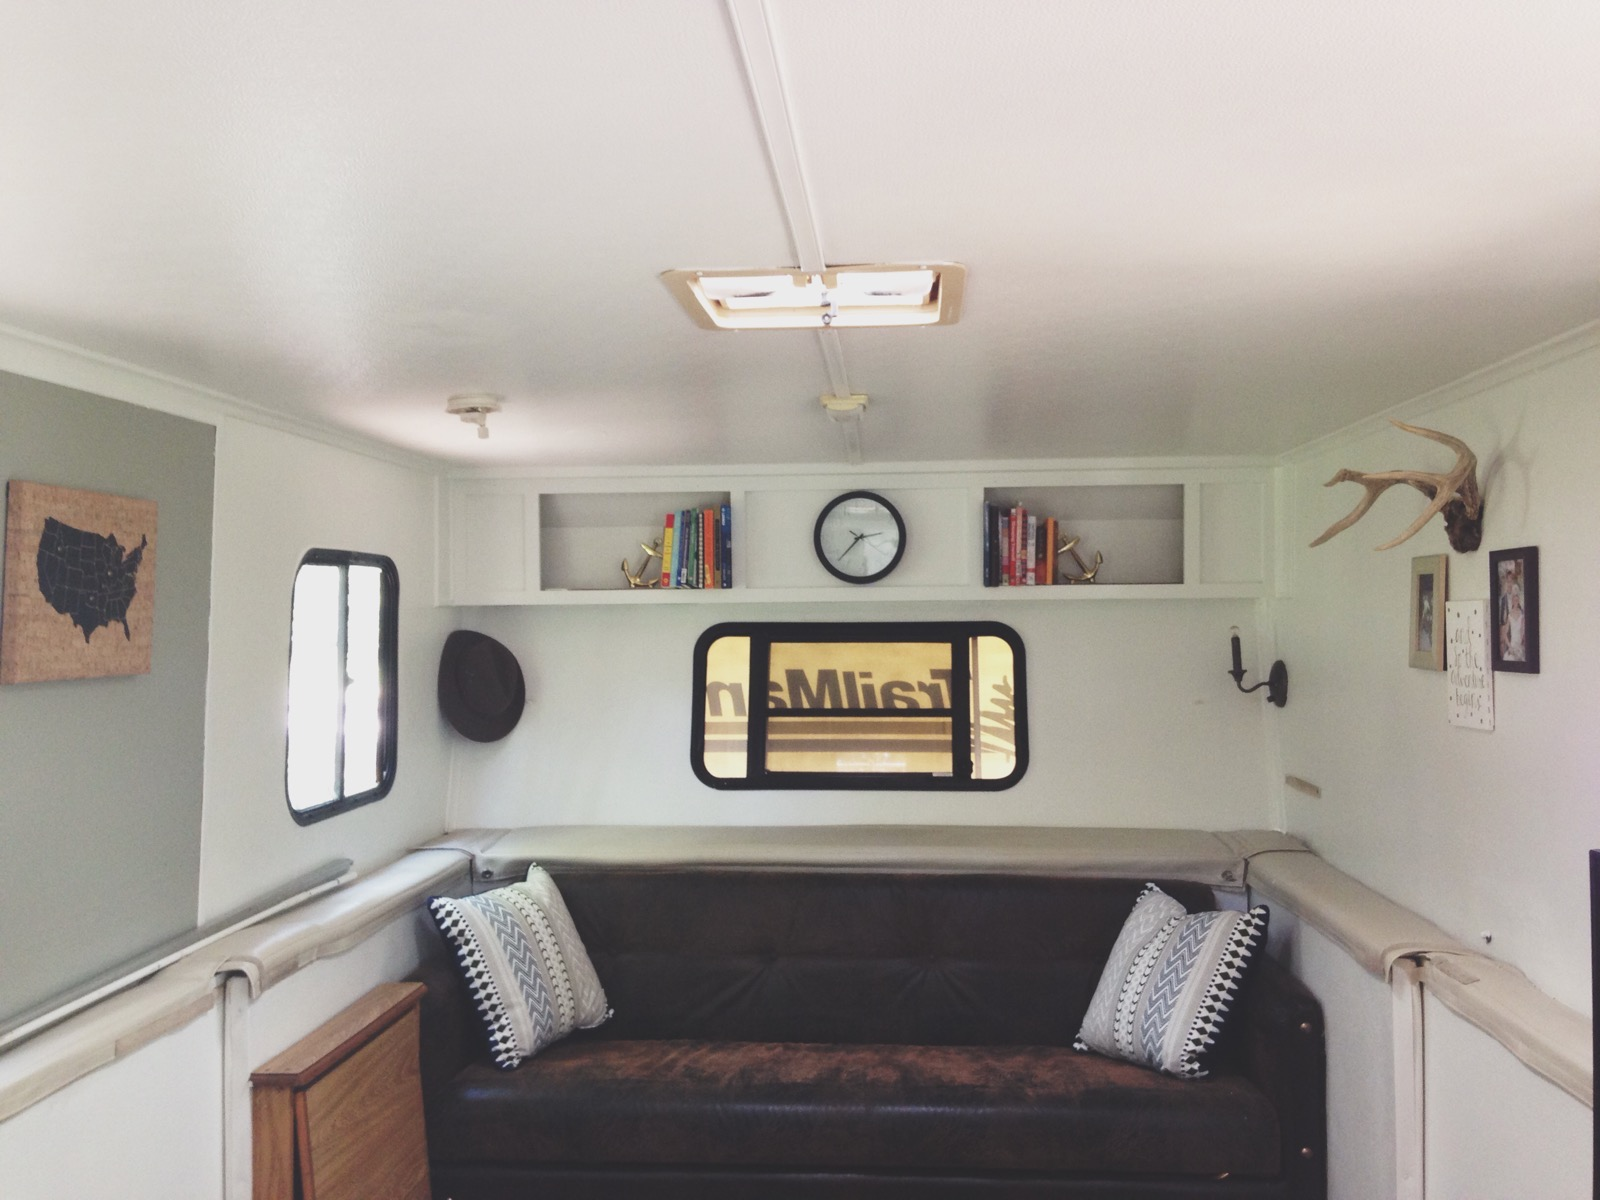 Camper After Remodle - 3 Reasons Why Living In A Camper Was The Best Choice We've Made